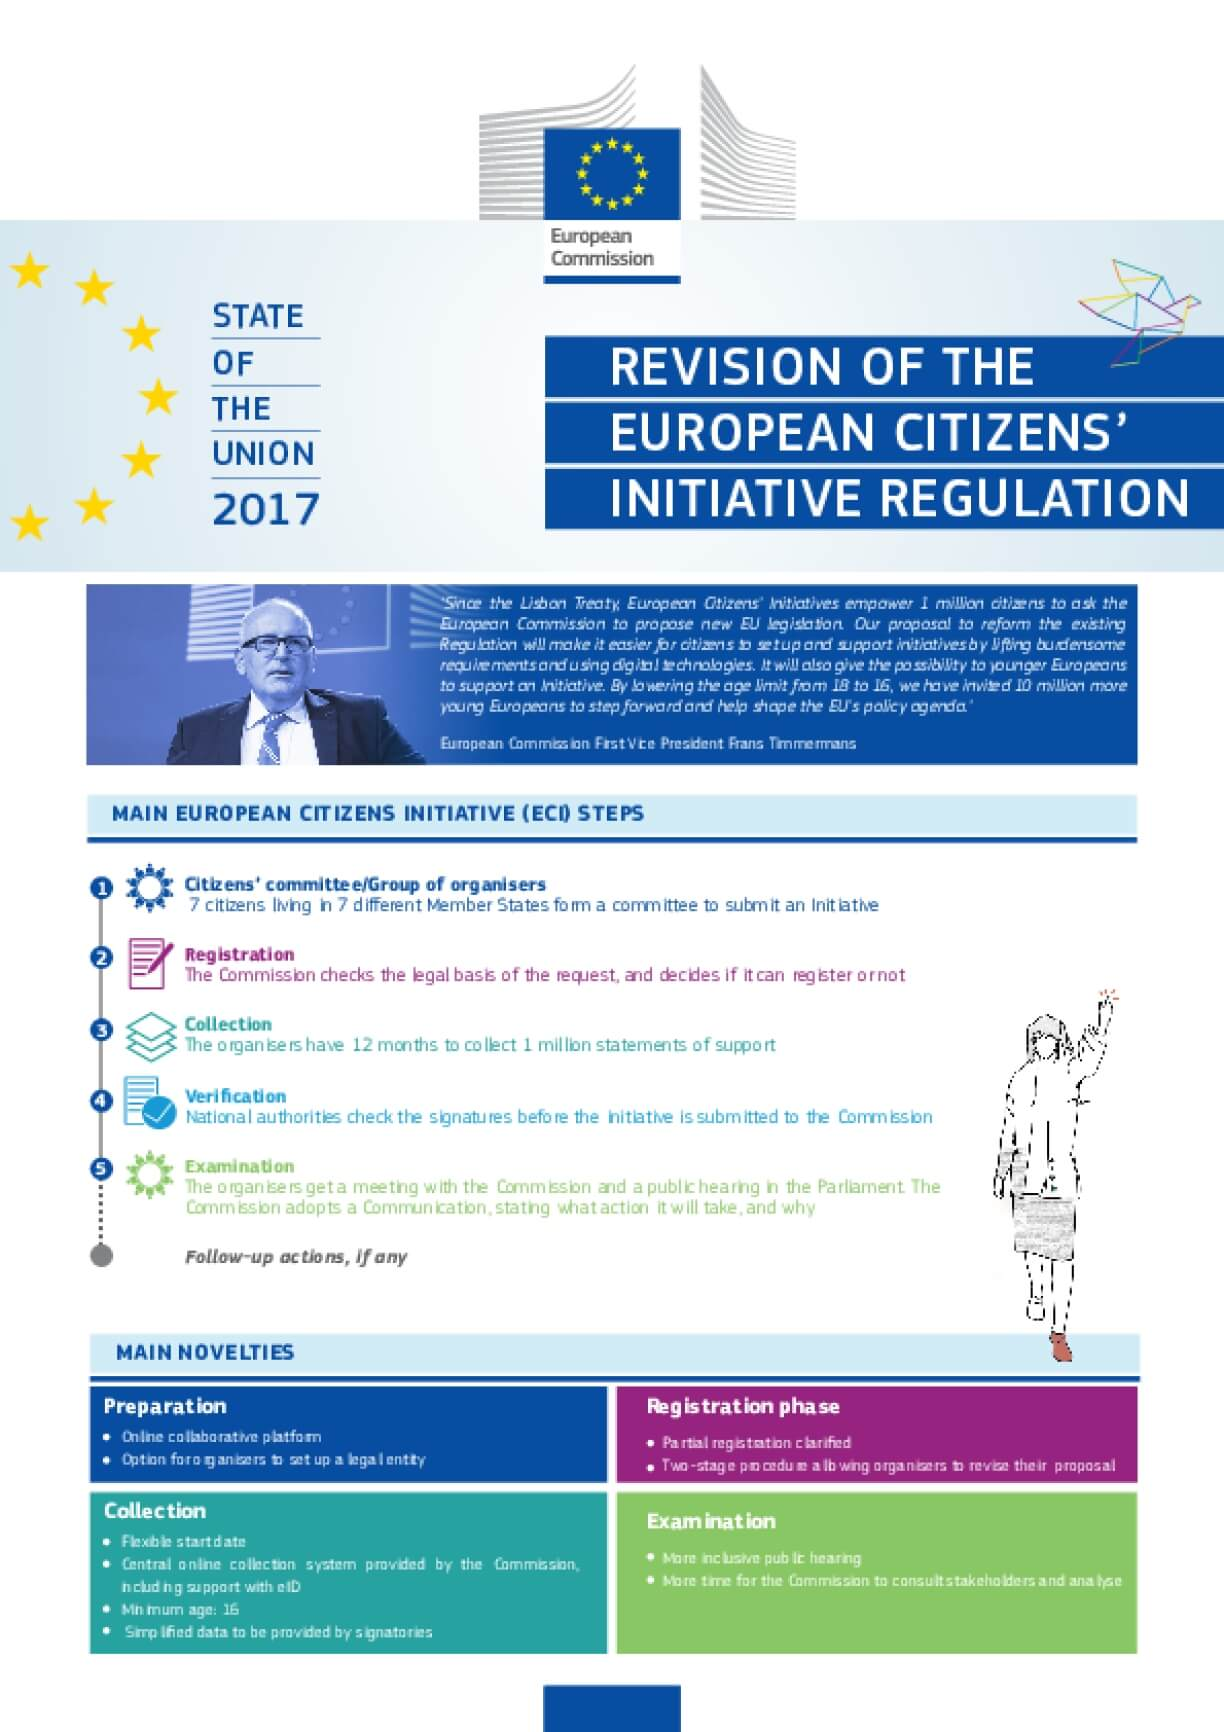 Revision of the European Citizens' Regulation